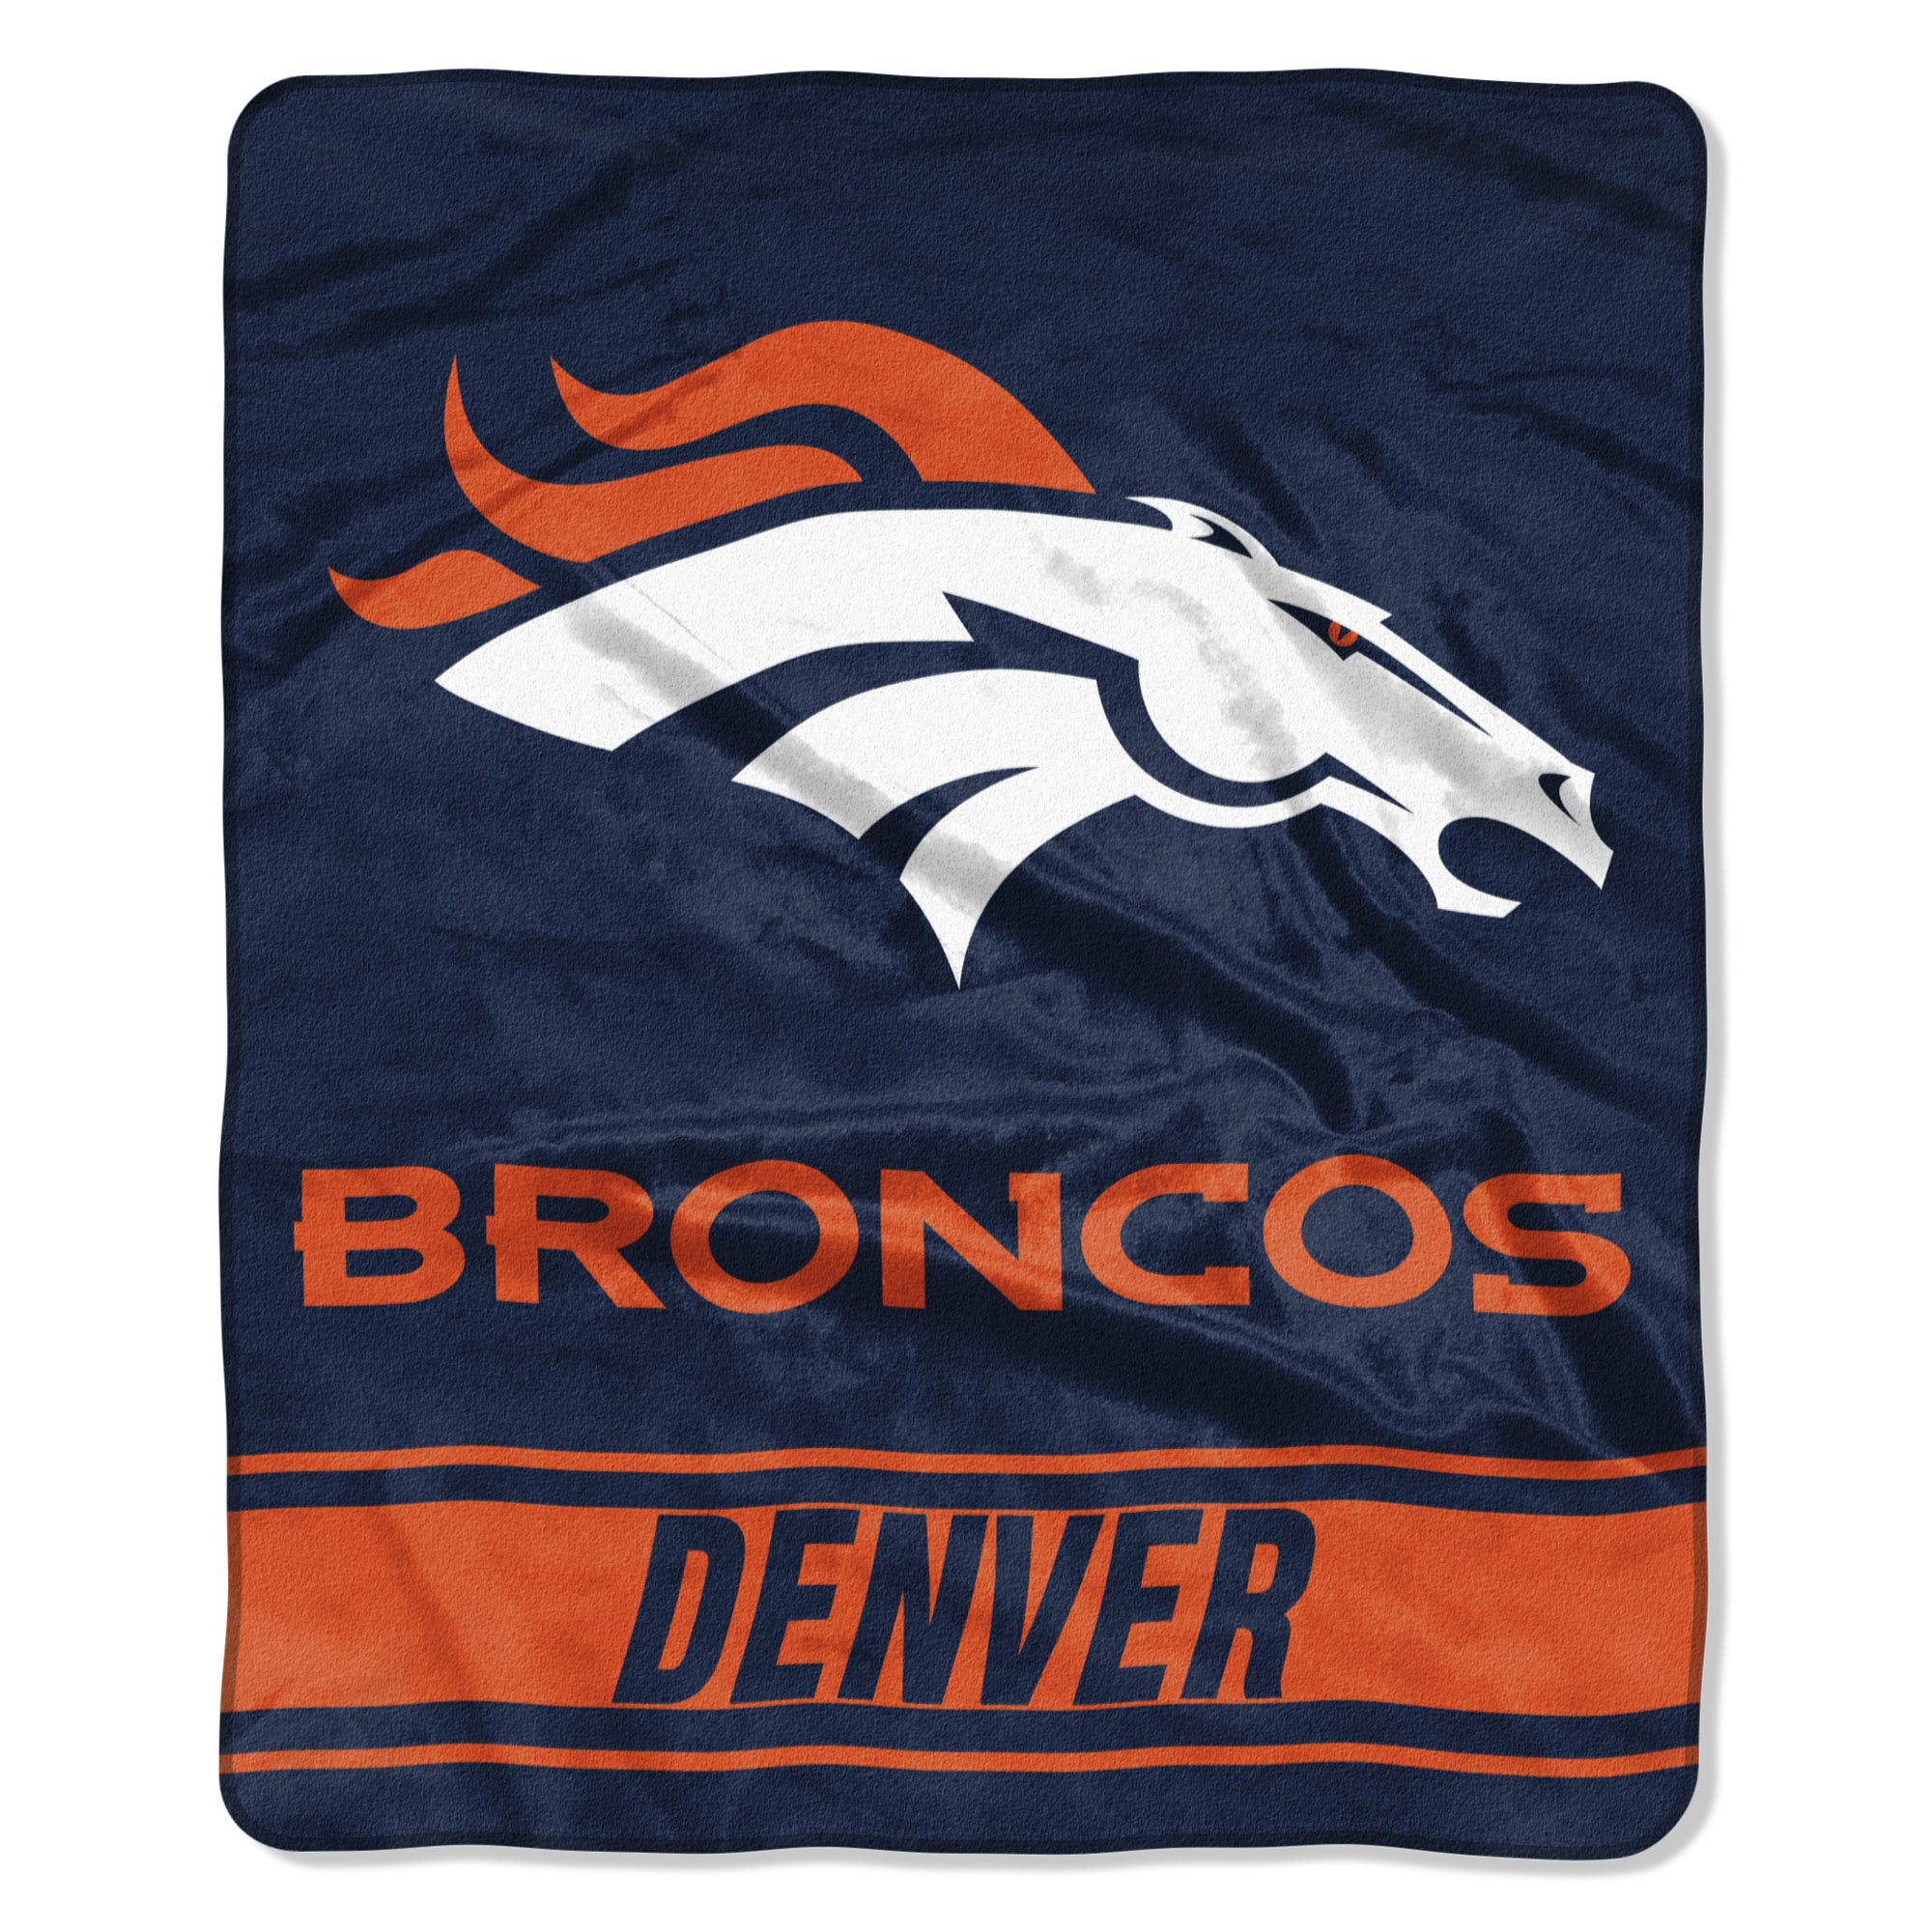 "Denver Broncos The Northwest Company 50"" x 60"" Stabilize Raschel Plush Throw Blanket - No Size"